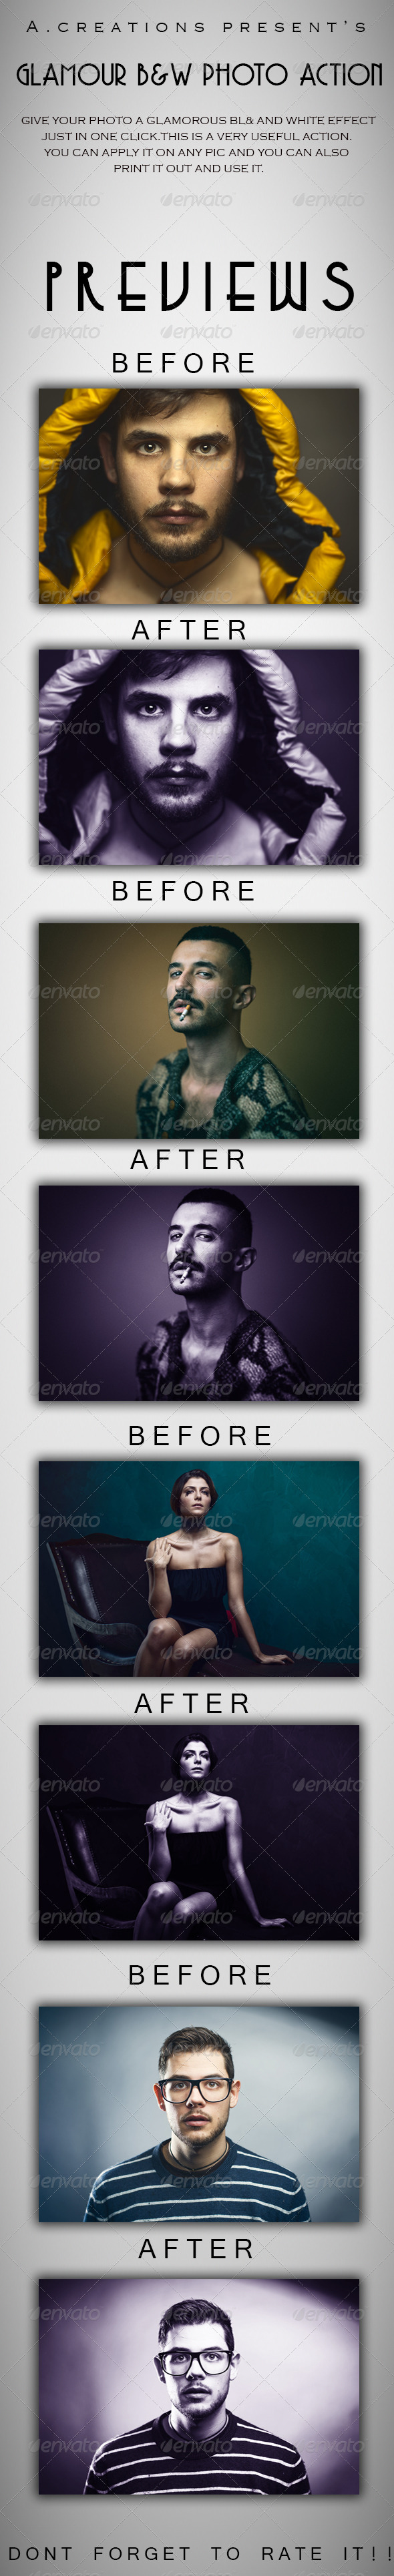 GraphicRiver Glamour B&W Photo Action 7519414